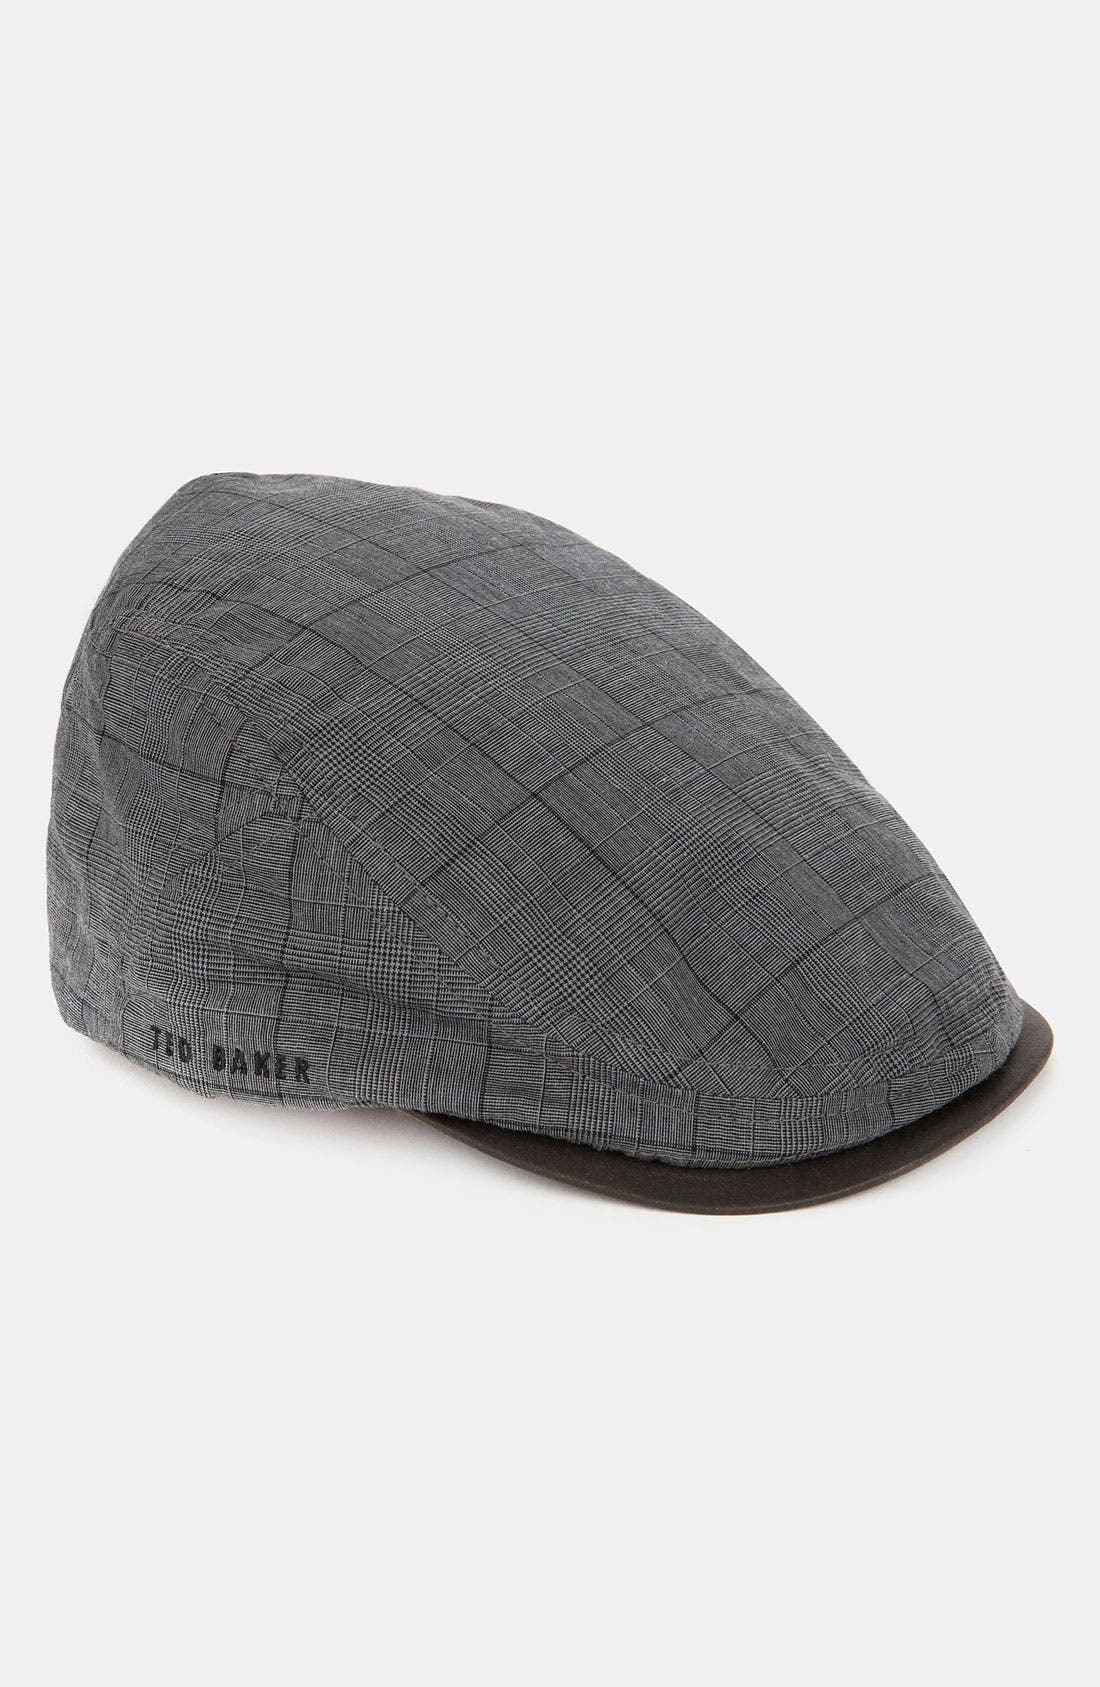 Alternate Image 1 Selected - Ted Baker London 'Piazza' Driving Cap